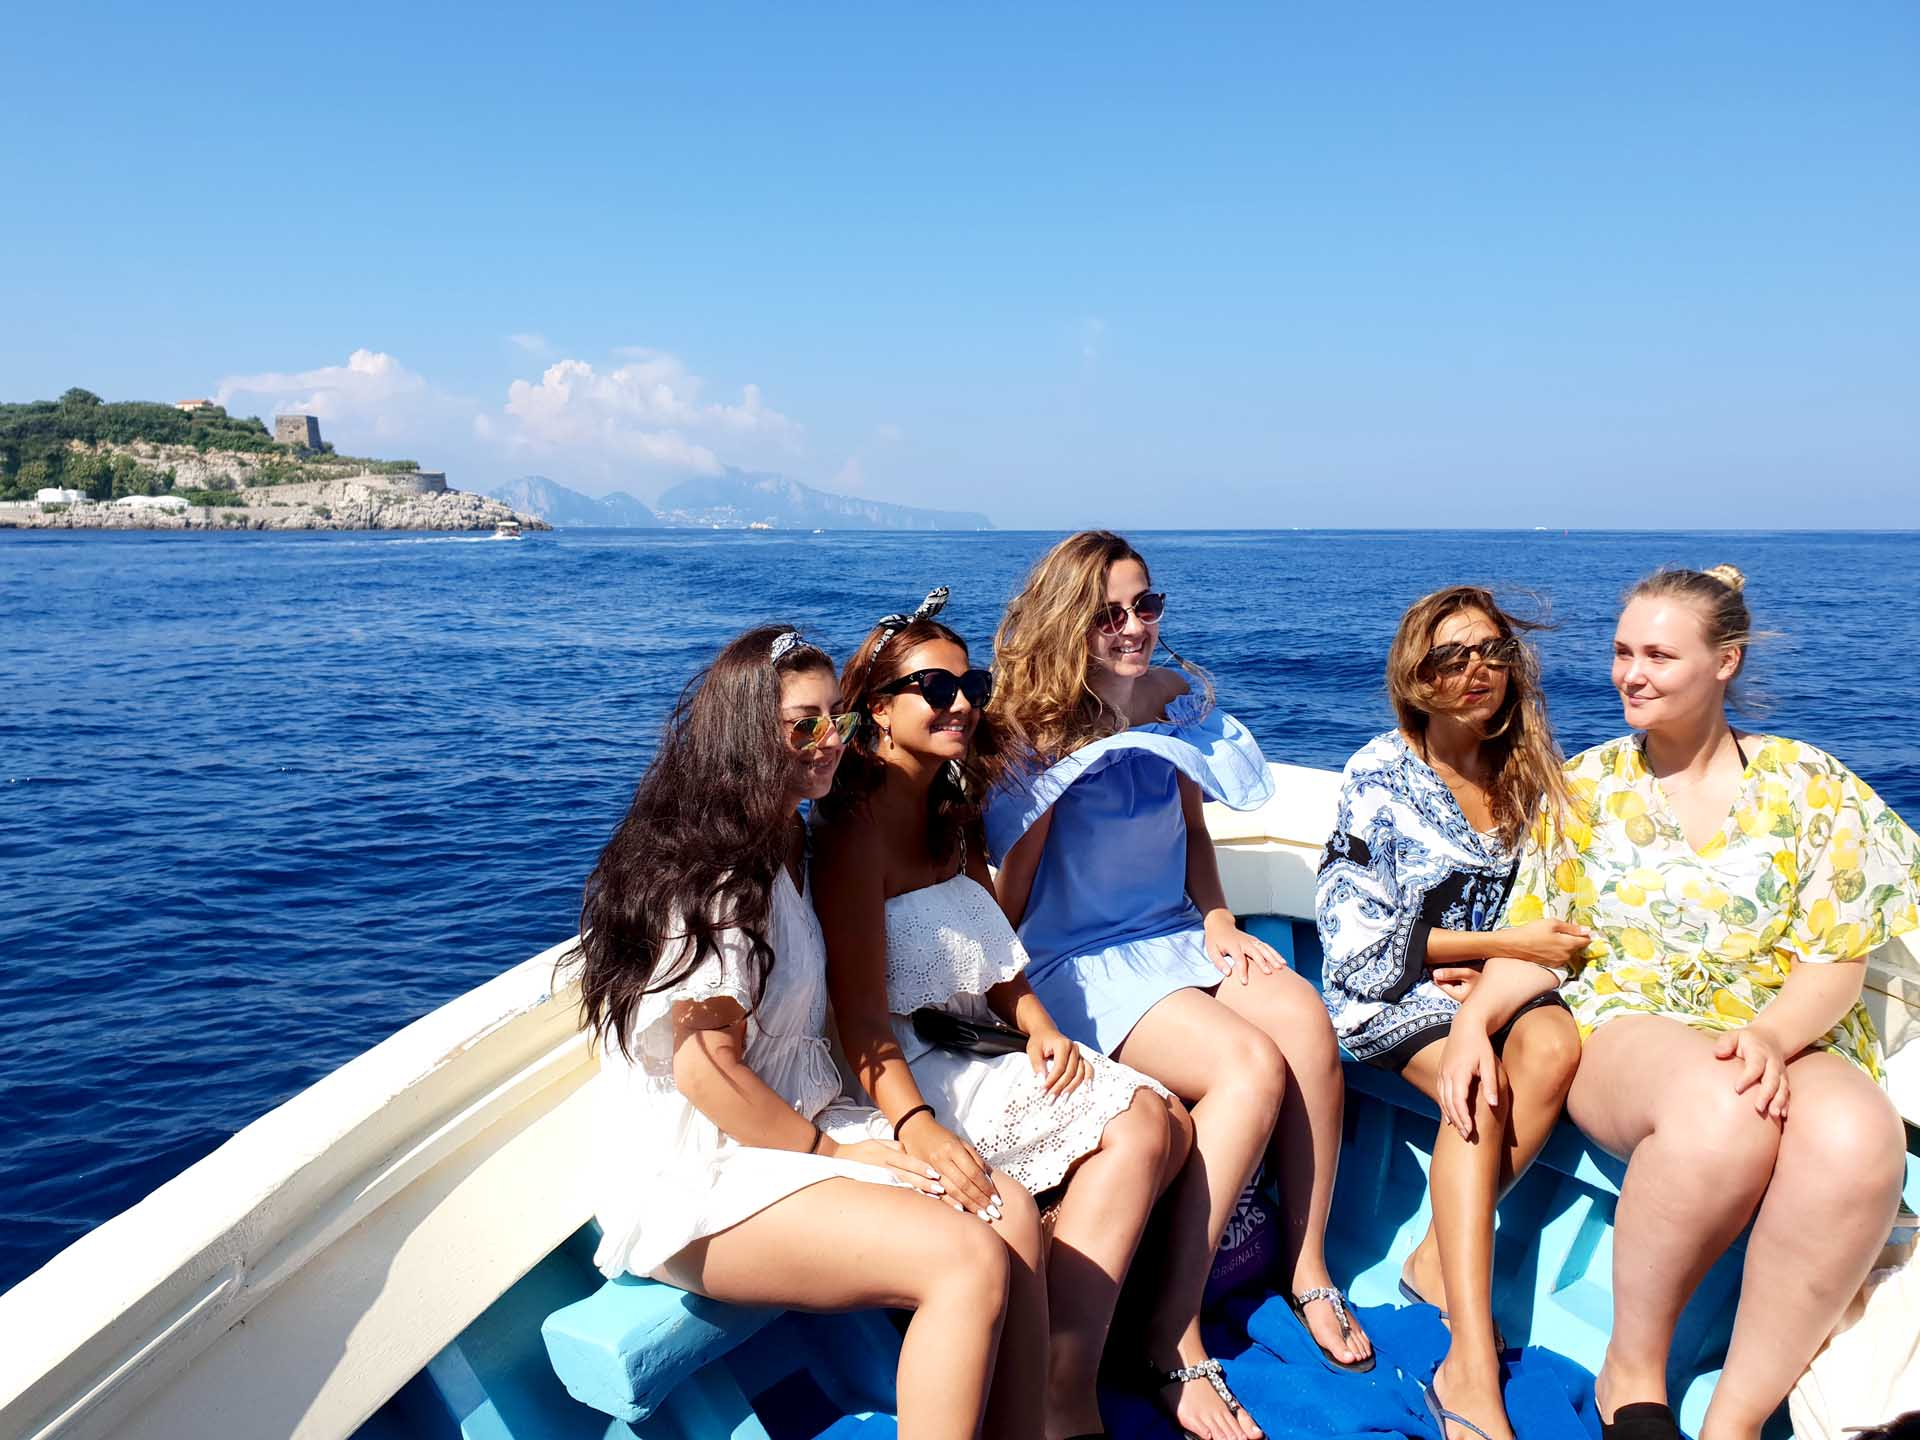 Friends on a boat trip to Capri